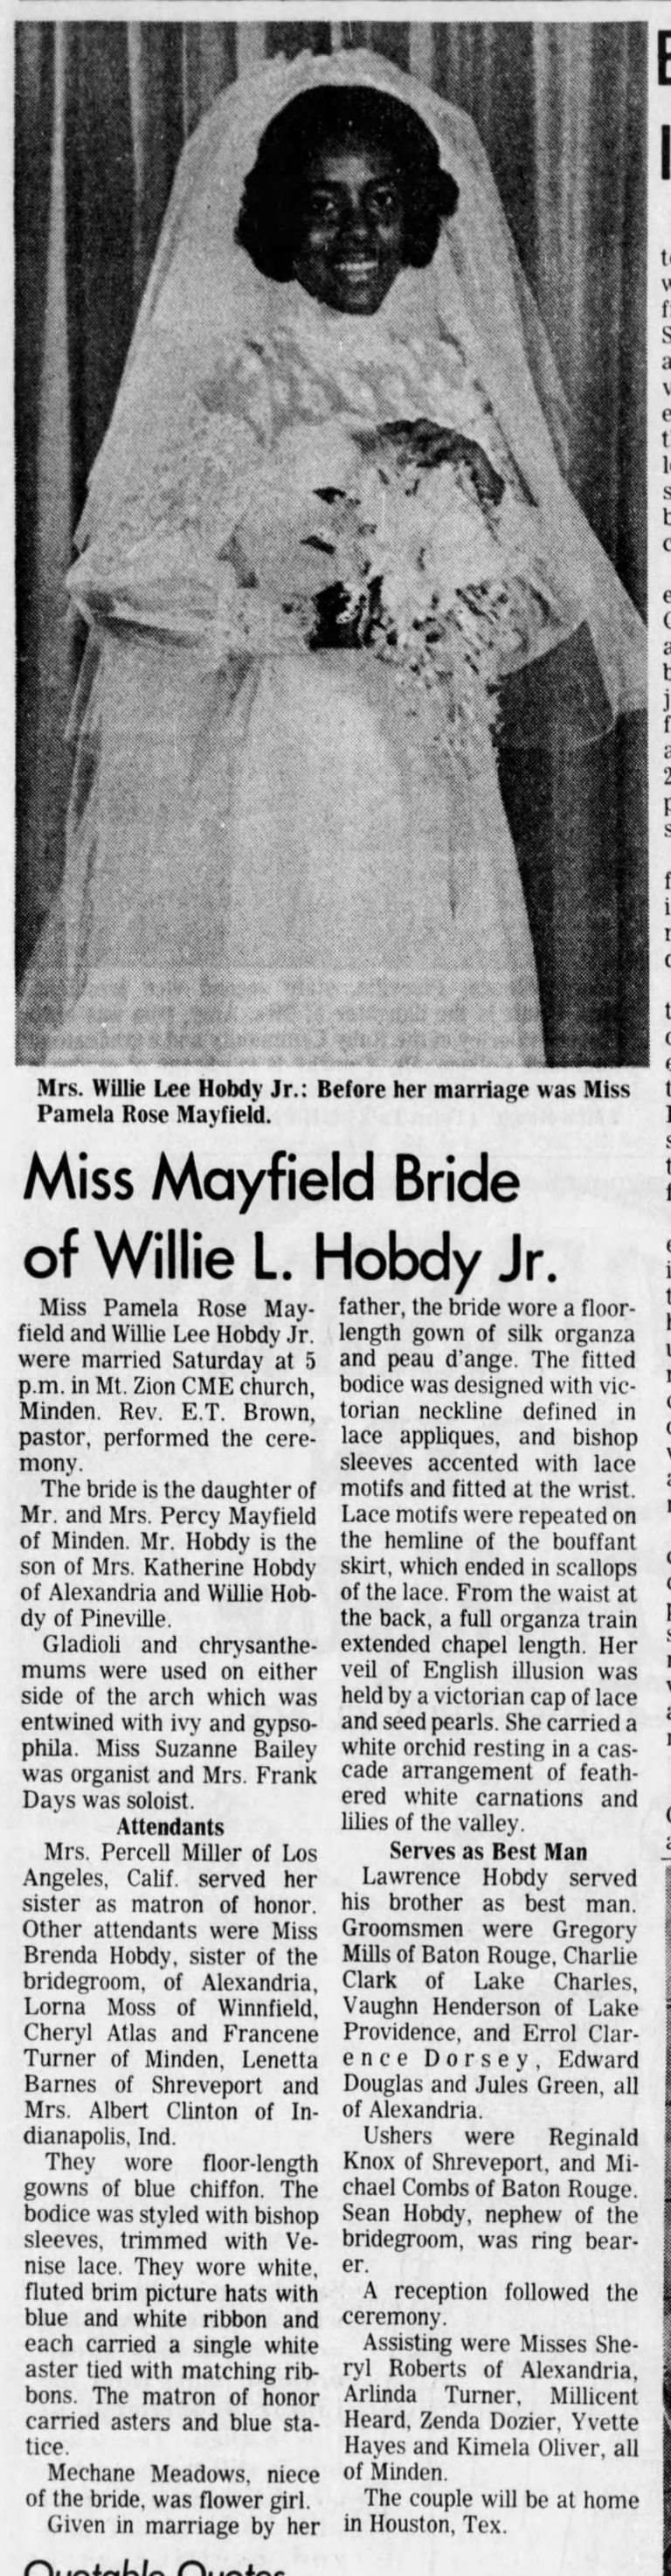 Miss Mayfield Bride of Willie L. Hobdy Jr., The Town Talk (Alexandria, LA), Monday, August 13, 1973, page 18